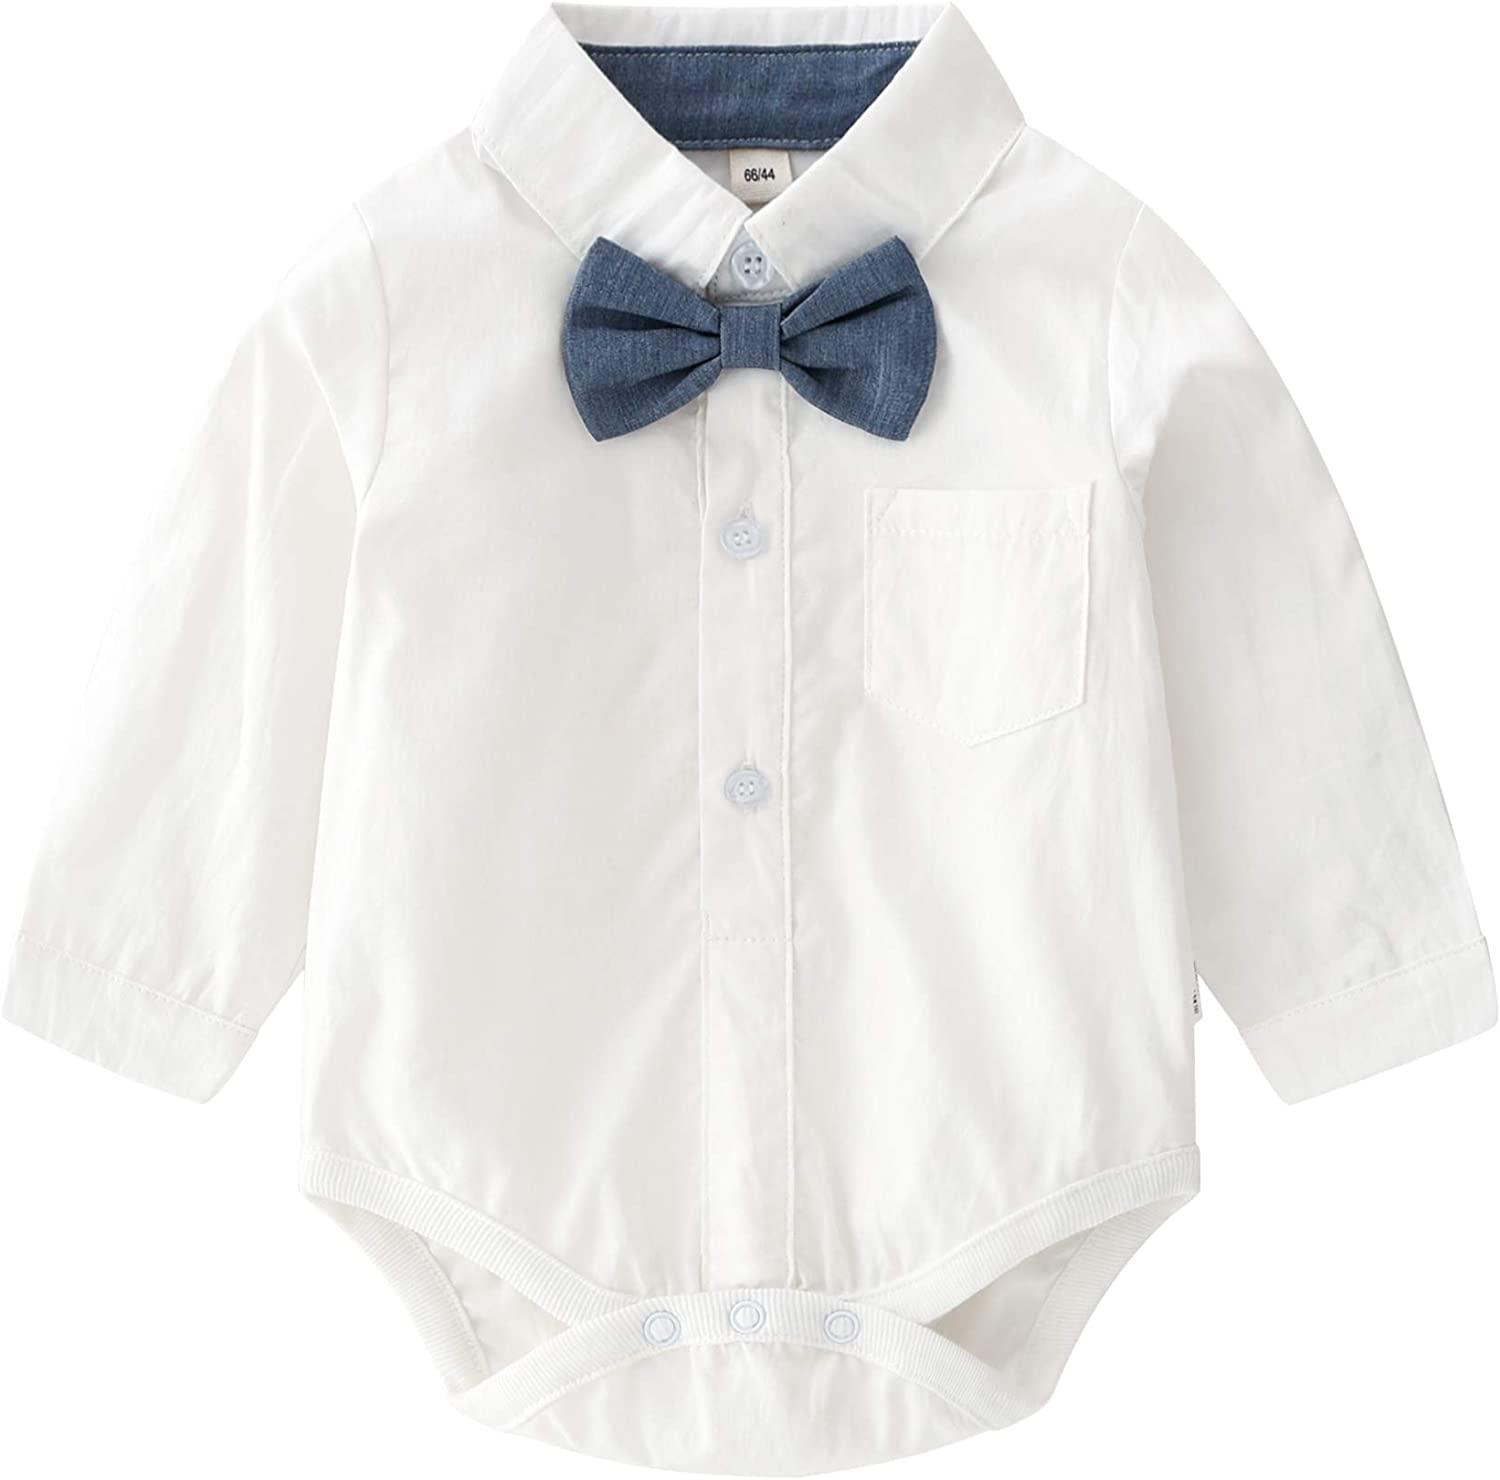 Infant Short Sleeve Shirt+Bib Pants+Bow Tie Overalls Clothes Set Baby Boys Gentleman Outfits Suits